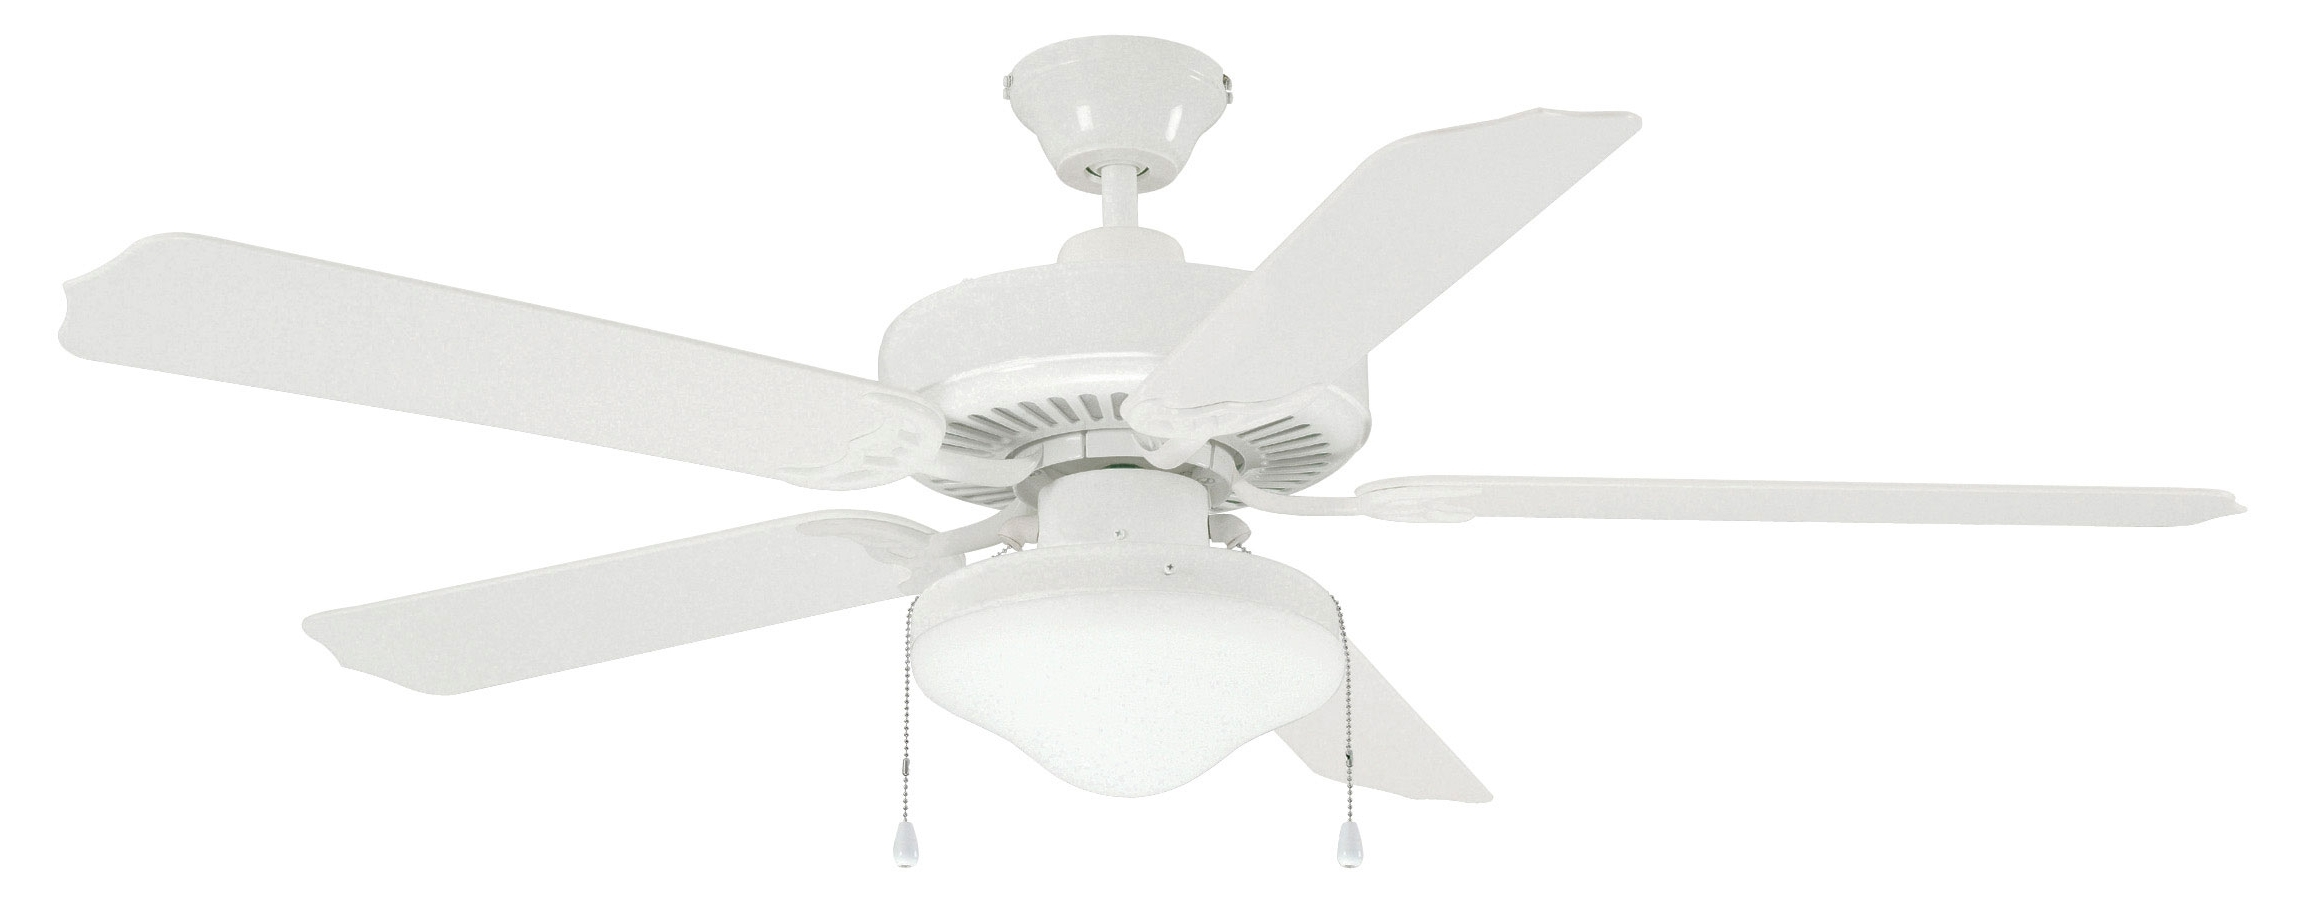 Newest Ceiling Fans White Ceiling Fan With Light Cruise Outdoor Wet Rated Regarding White Outdoor Ceiling Fans (View 14 of 20)